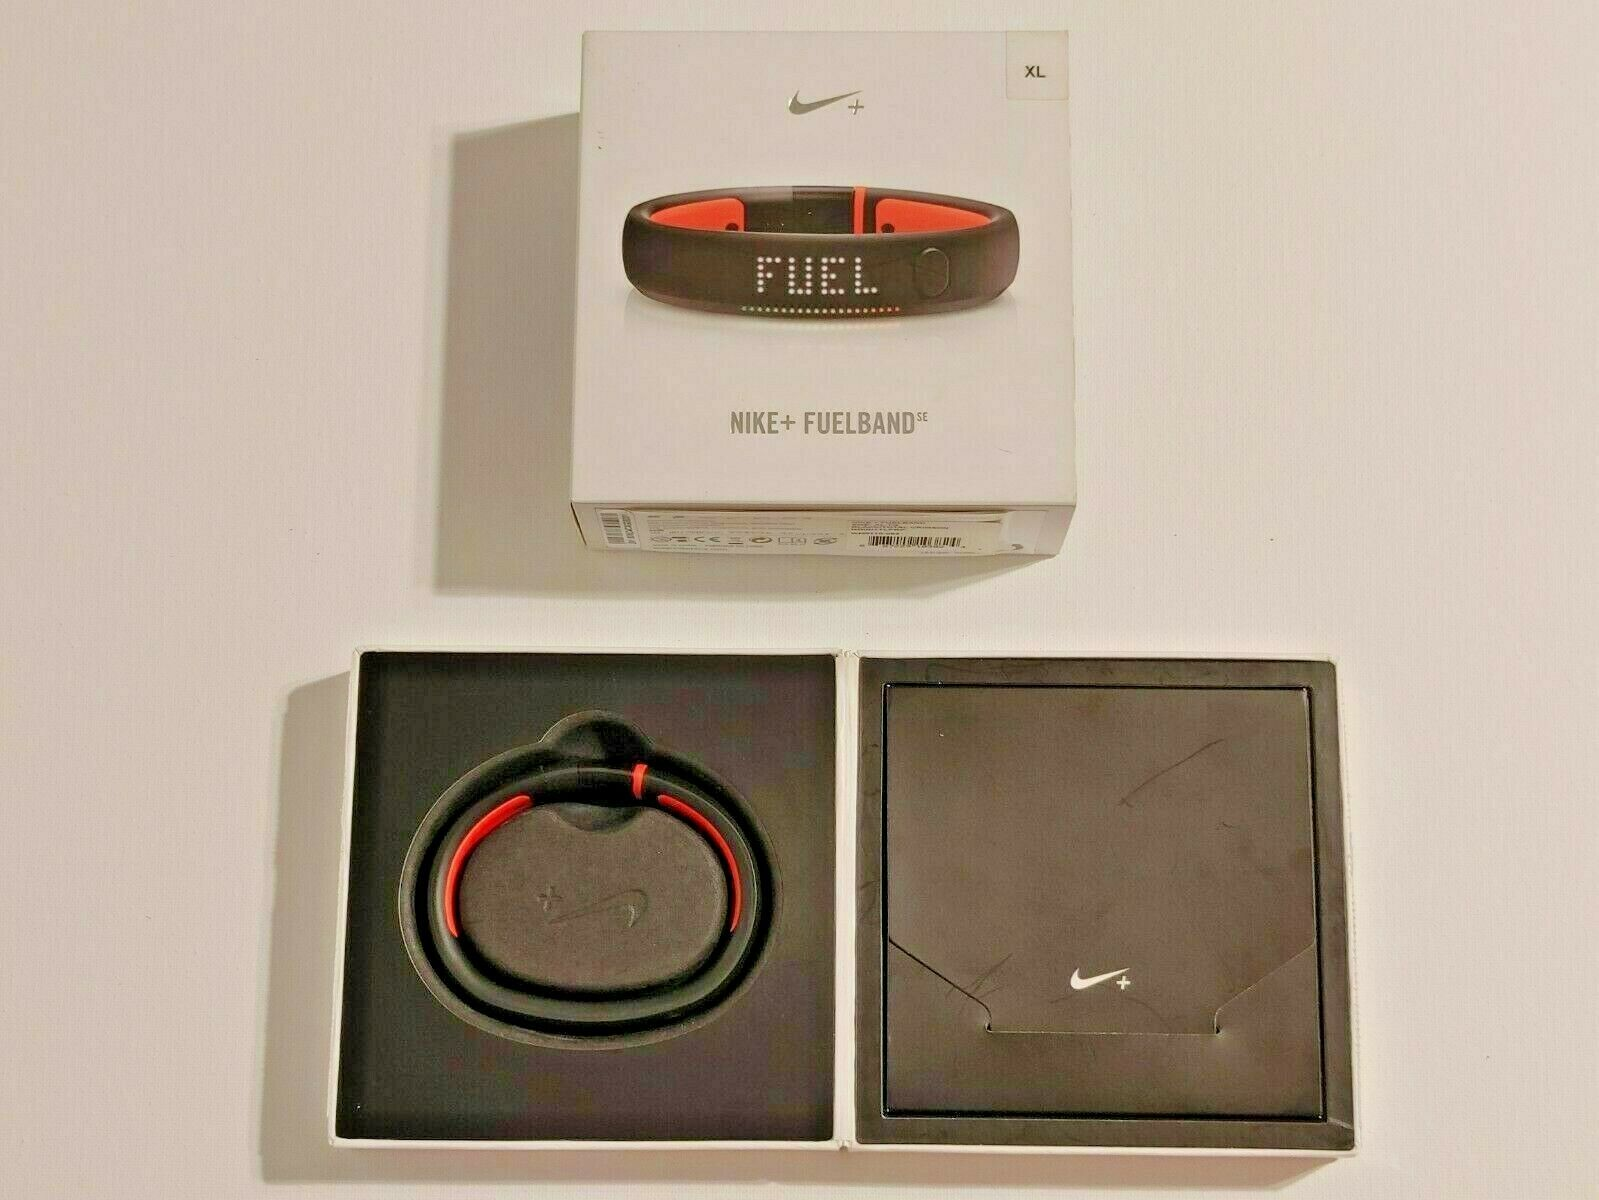 estaño Tina paciente  Nike+ Fuelband SE Fitness Tracker for sale online | eBay